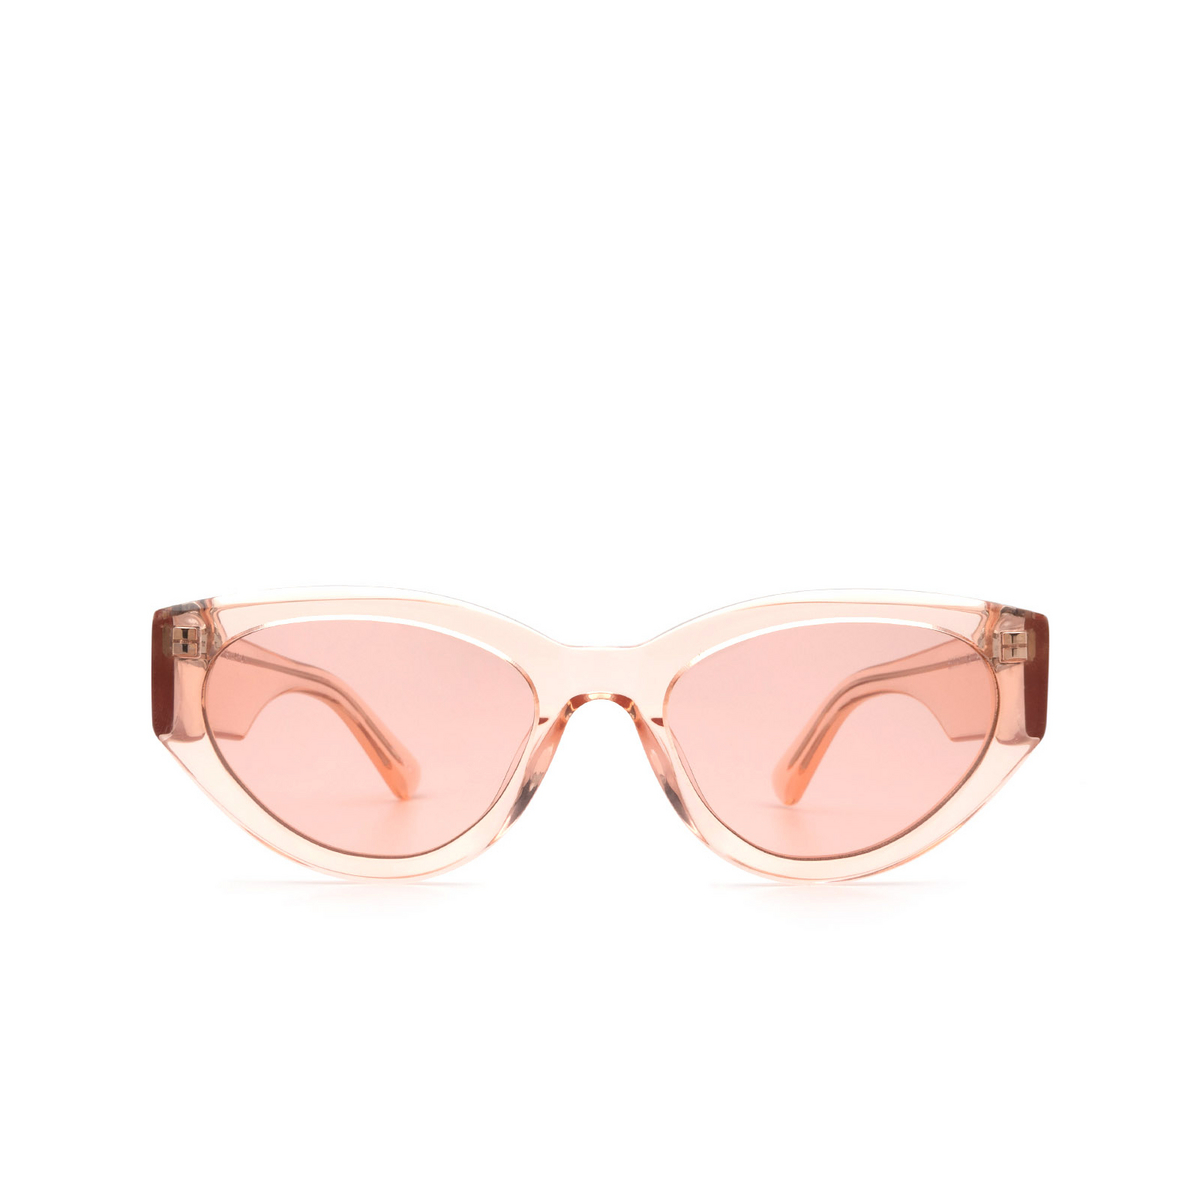 Chimi® Cat-eye Sunglasses: 06 color Pink.